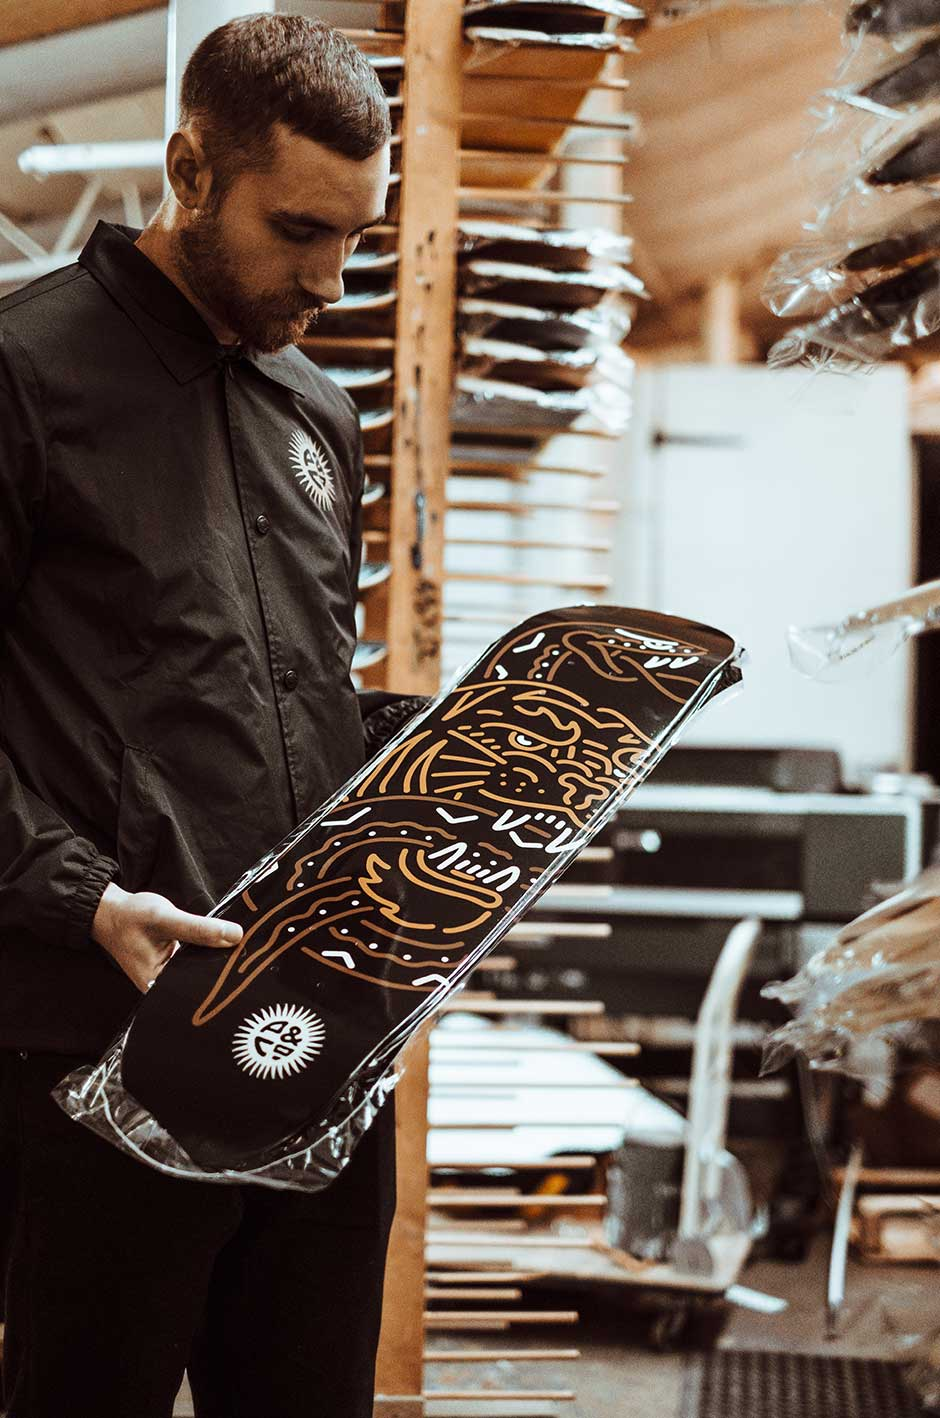 Skateboards made in Birmingham